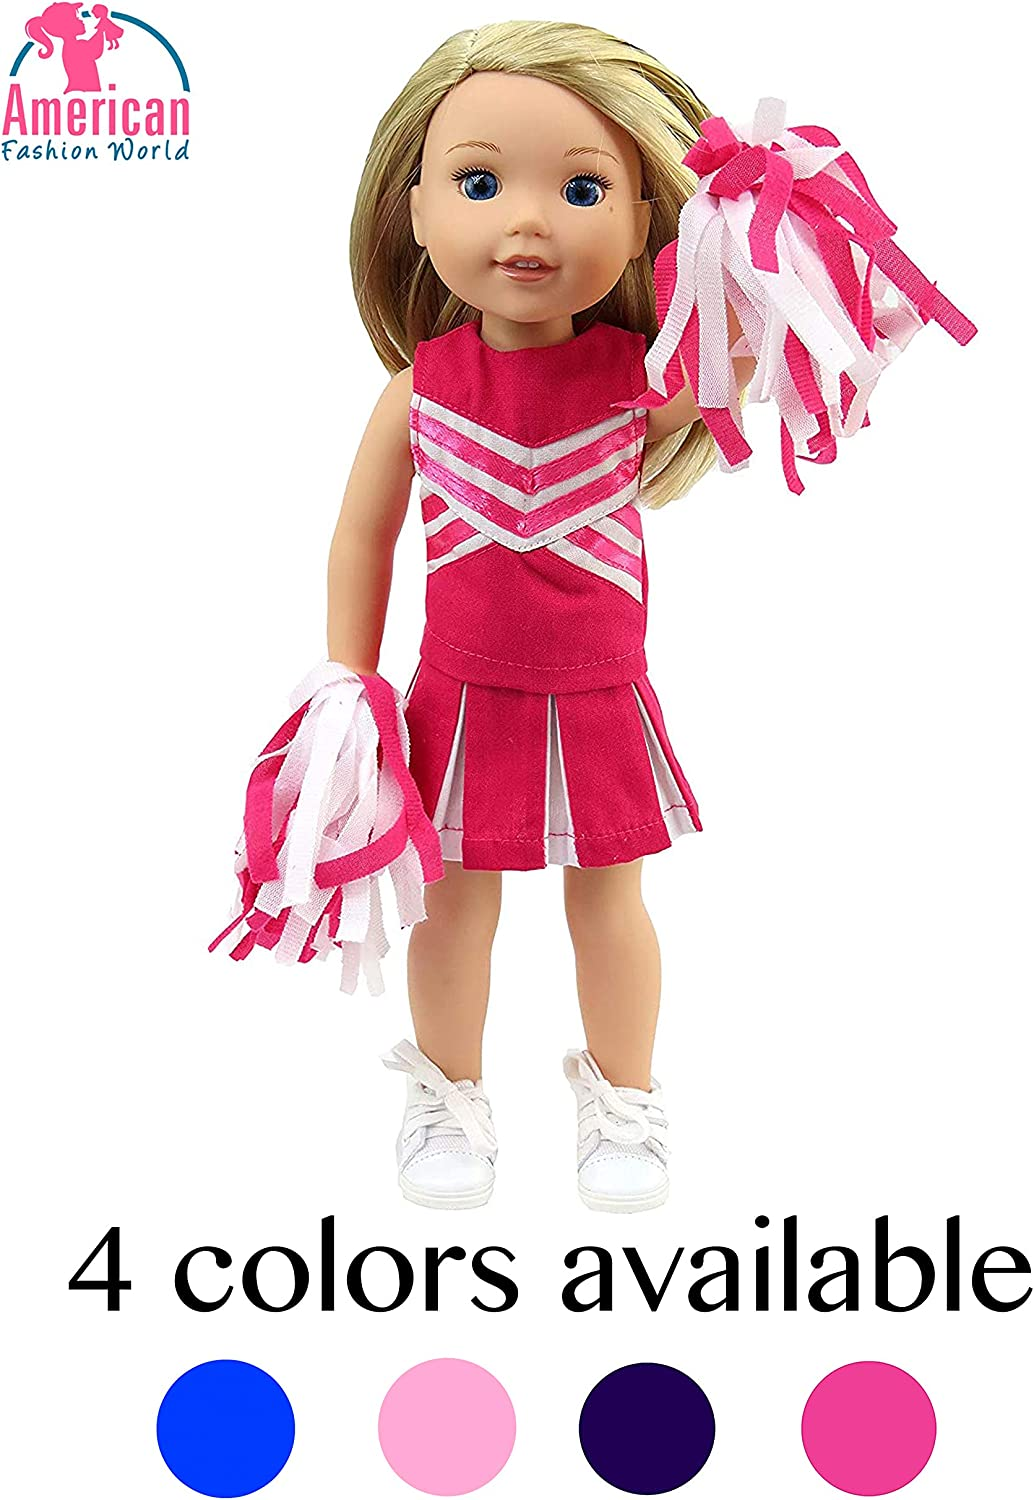 Red Pink Heart Dress Clothes Fits American Girl Wellie Wisher Dolls